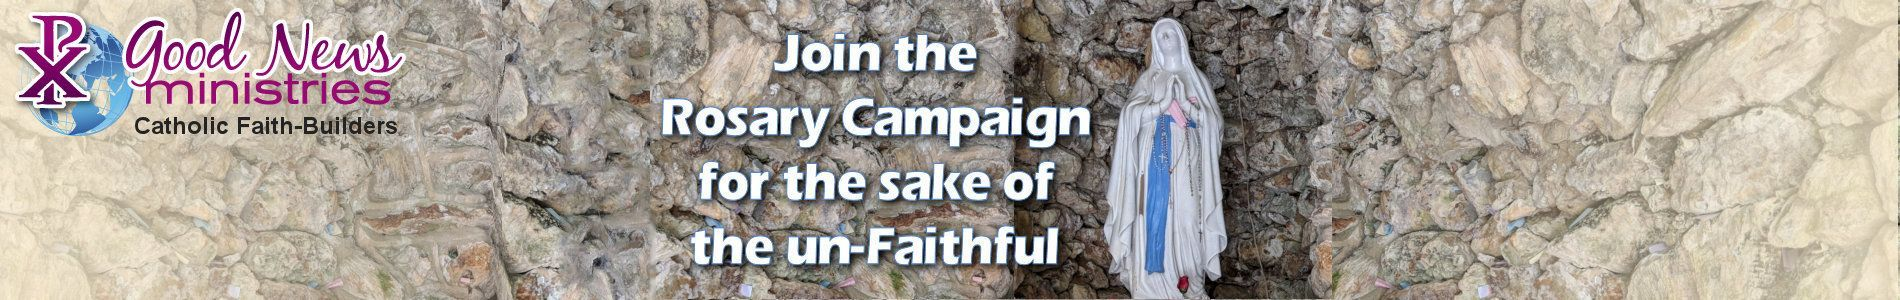 Join the Rosary Campaign